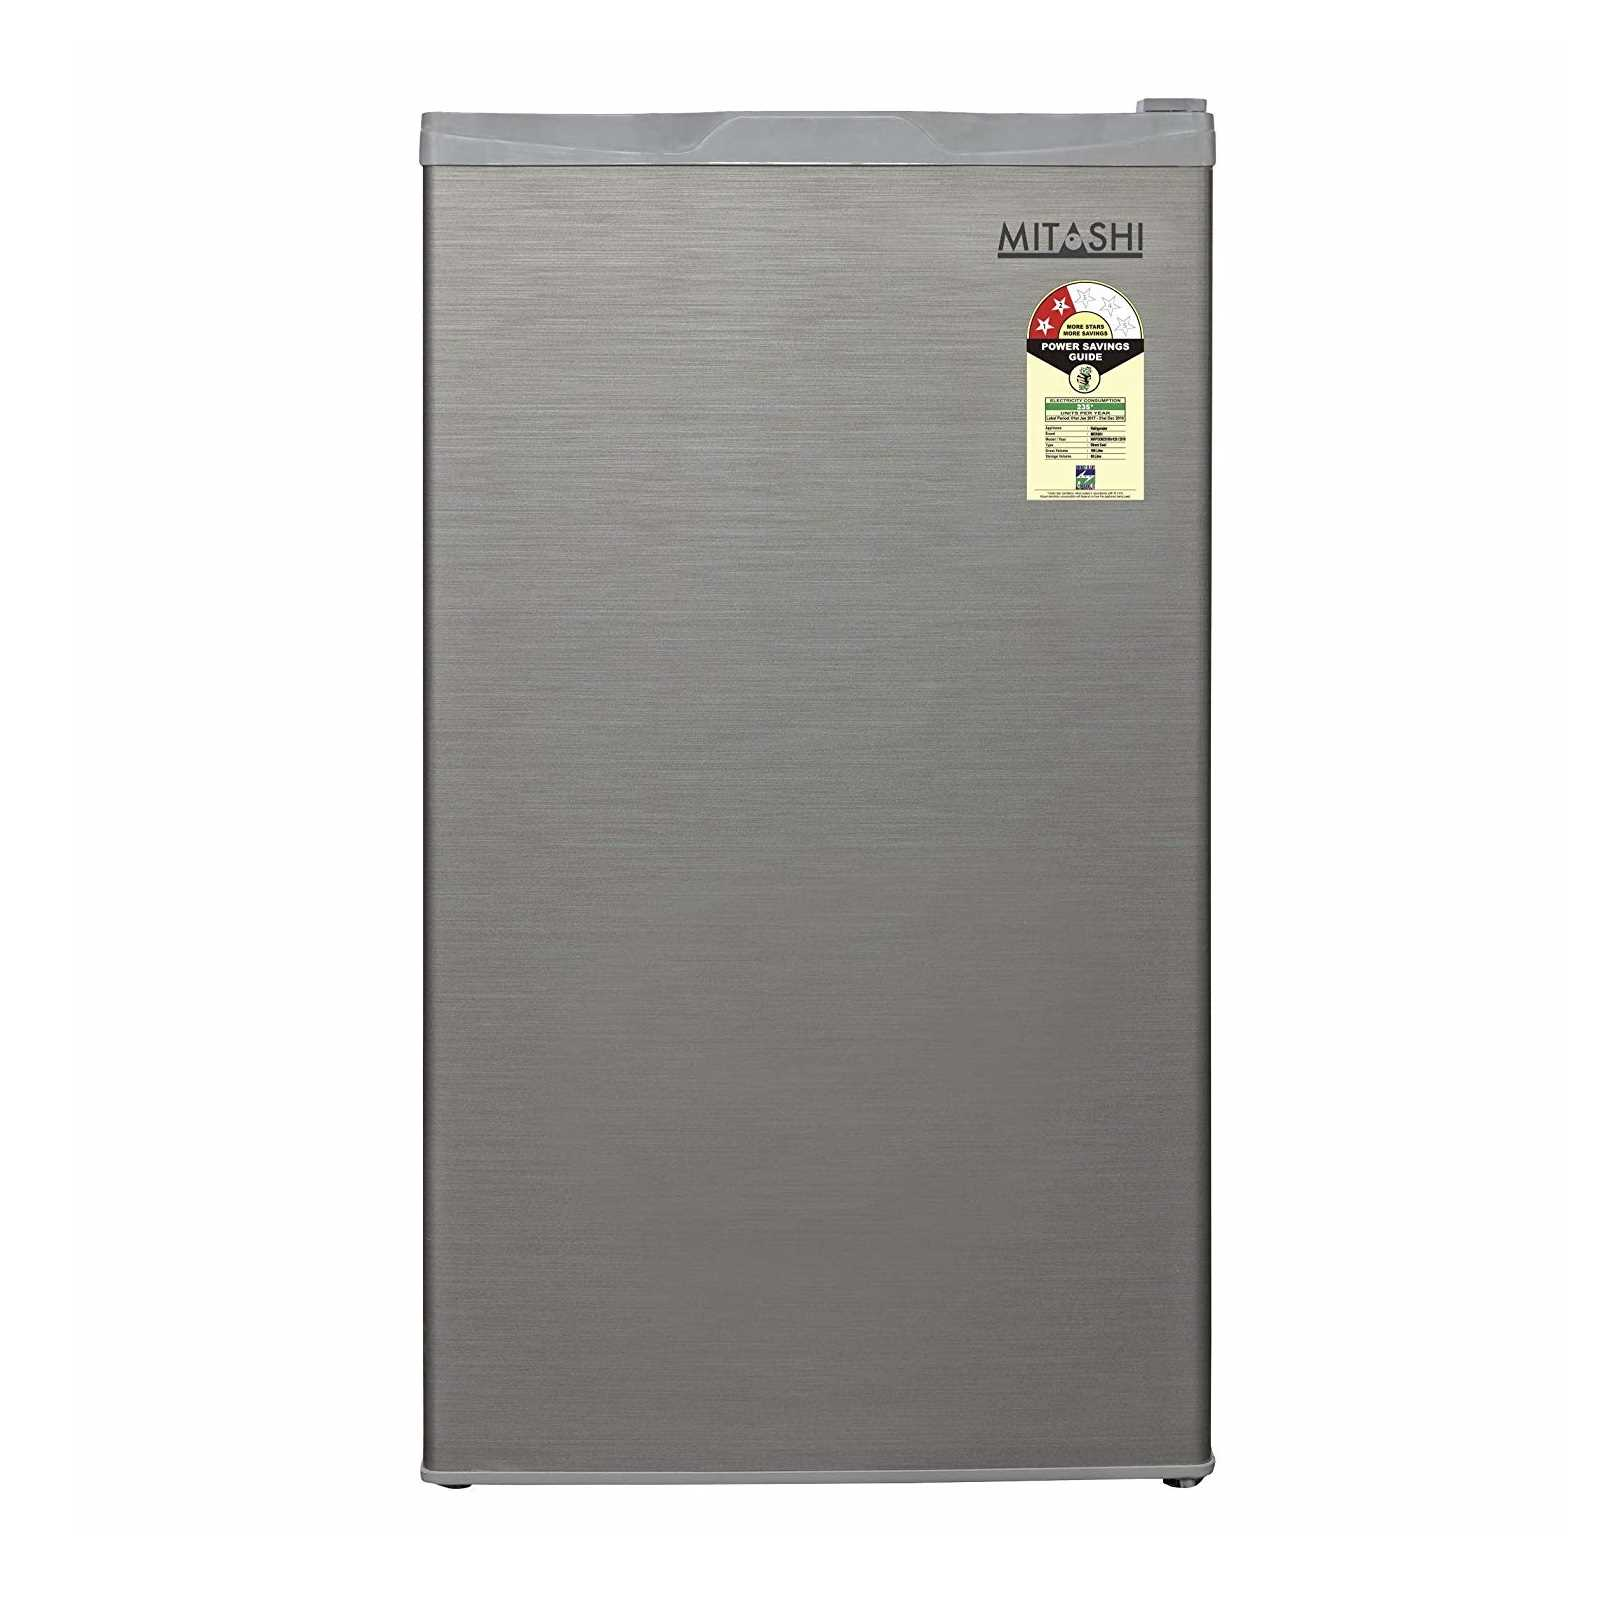 Mitashi MiRFSDM2S100v120 100 Litre Direct Cool Single Door Refrigerator